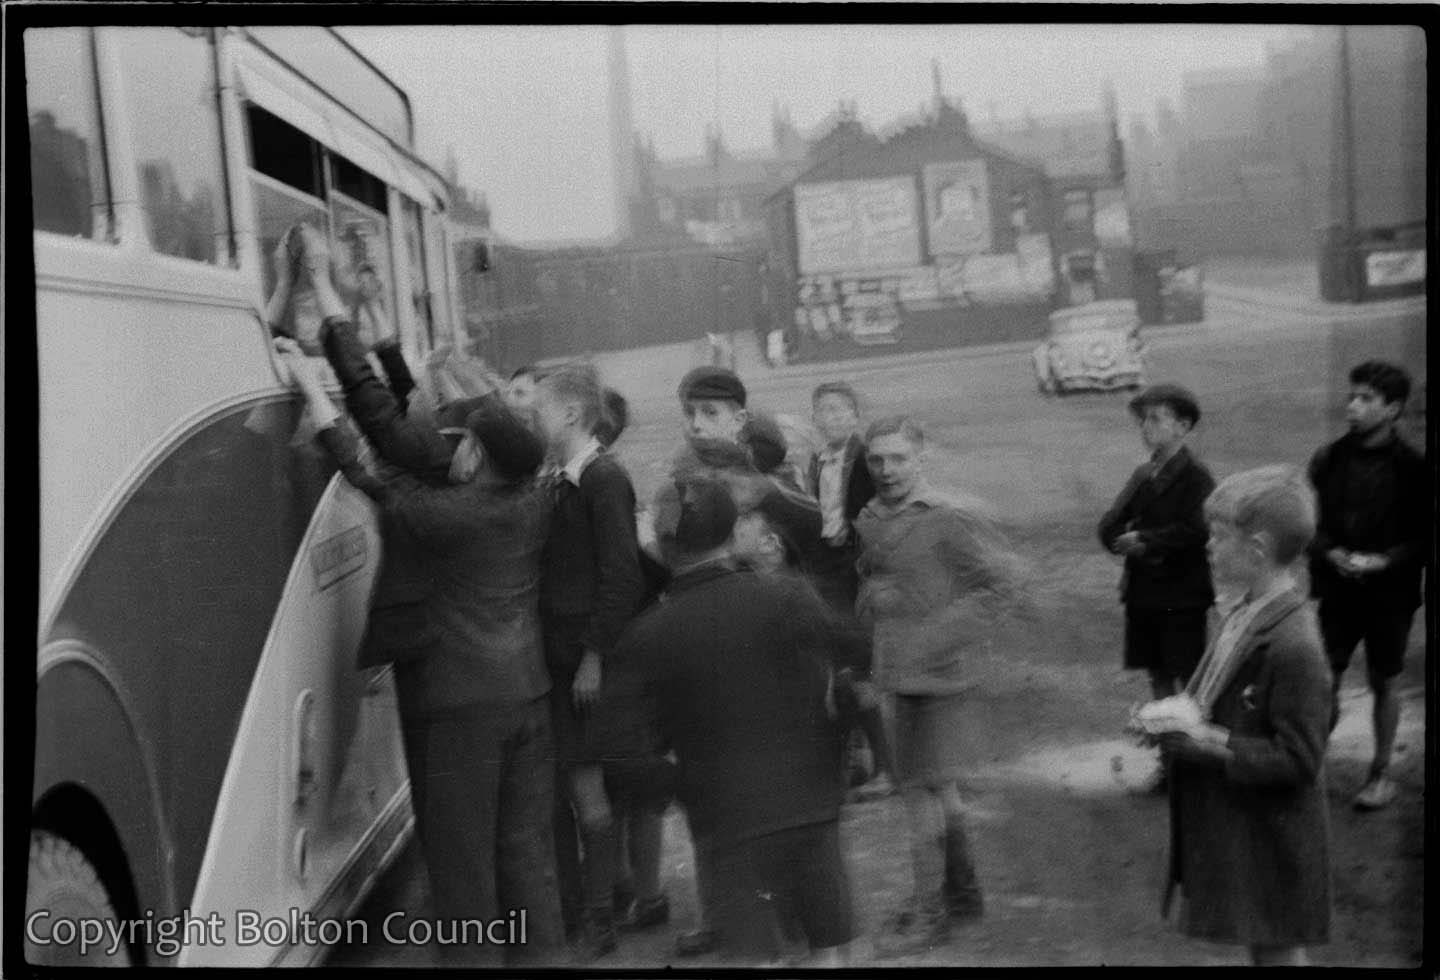 Boys wait for footballers autographs after a Bolton Wanderers reserve team game at Burnden Park